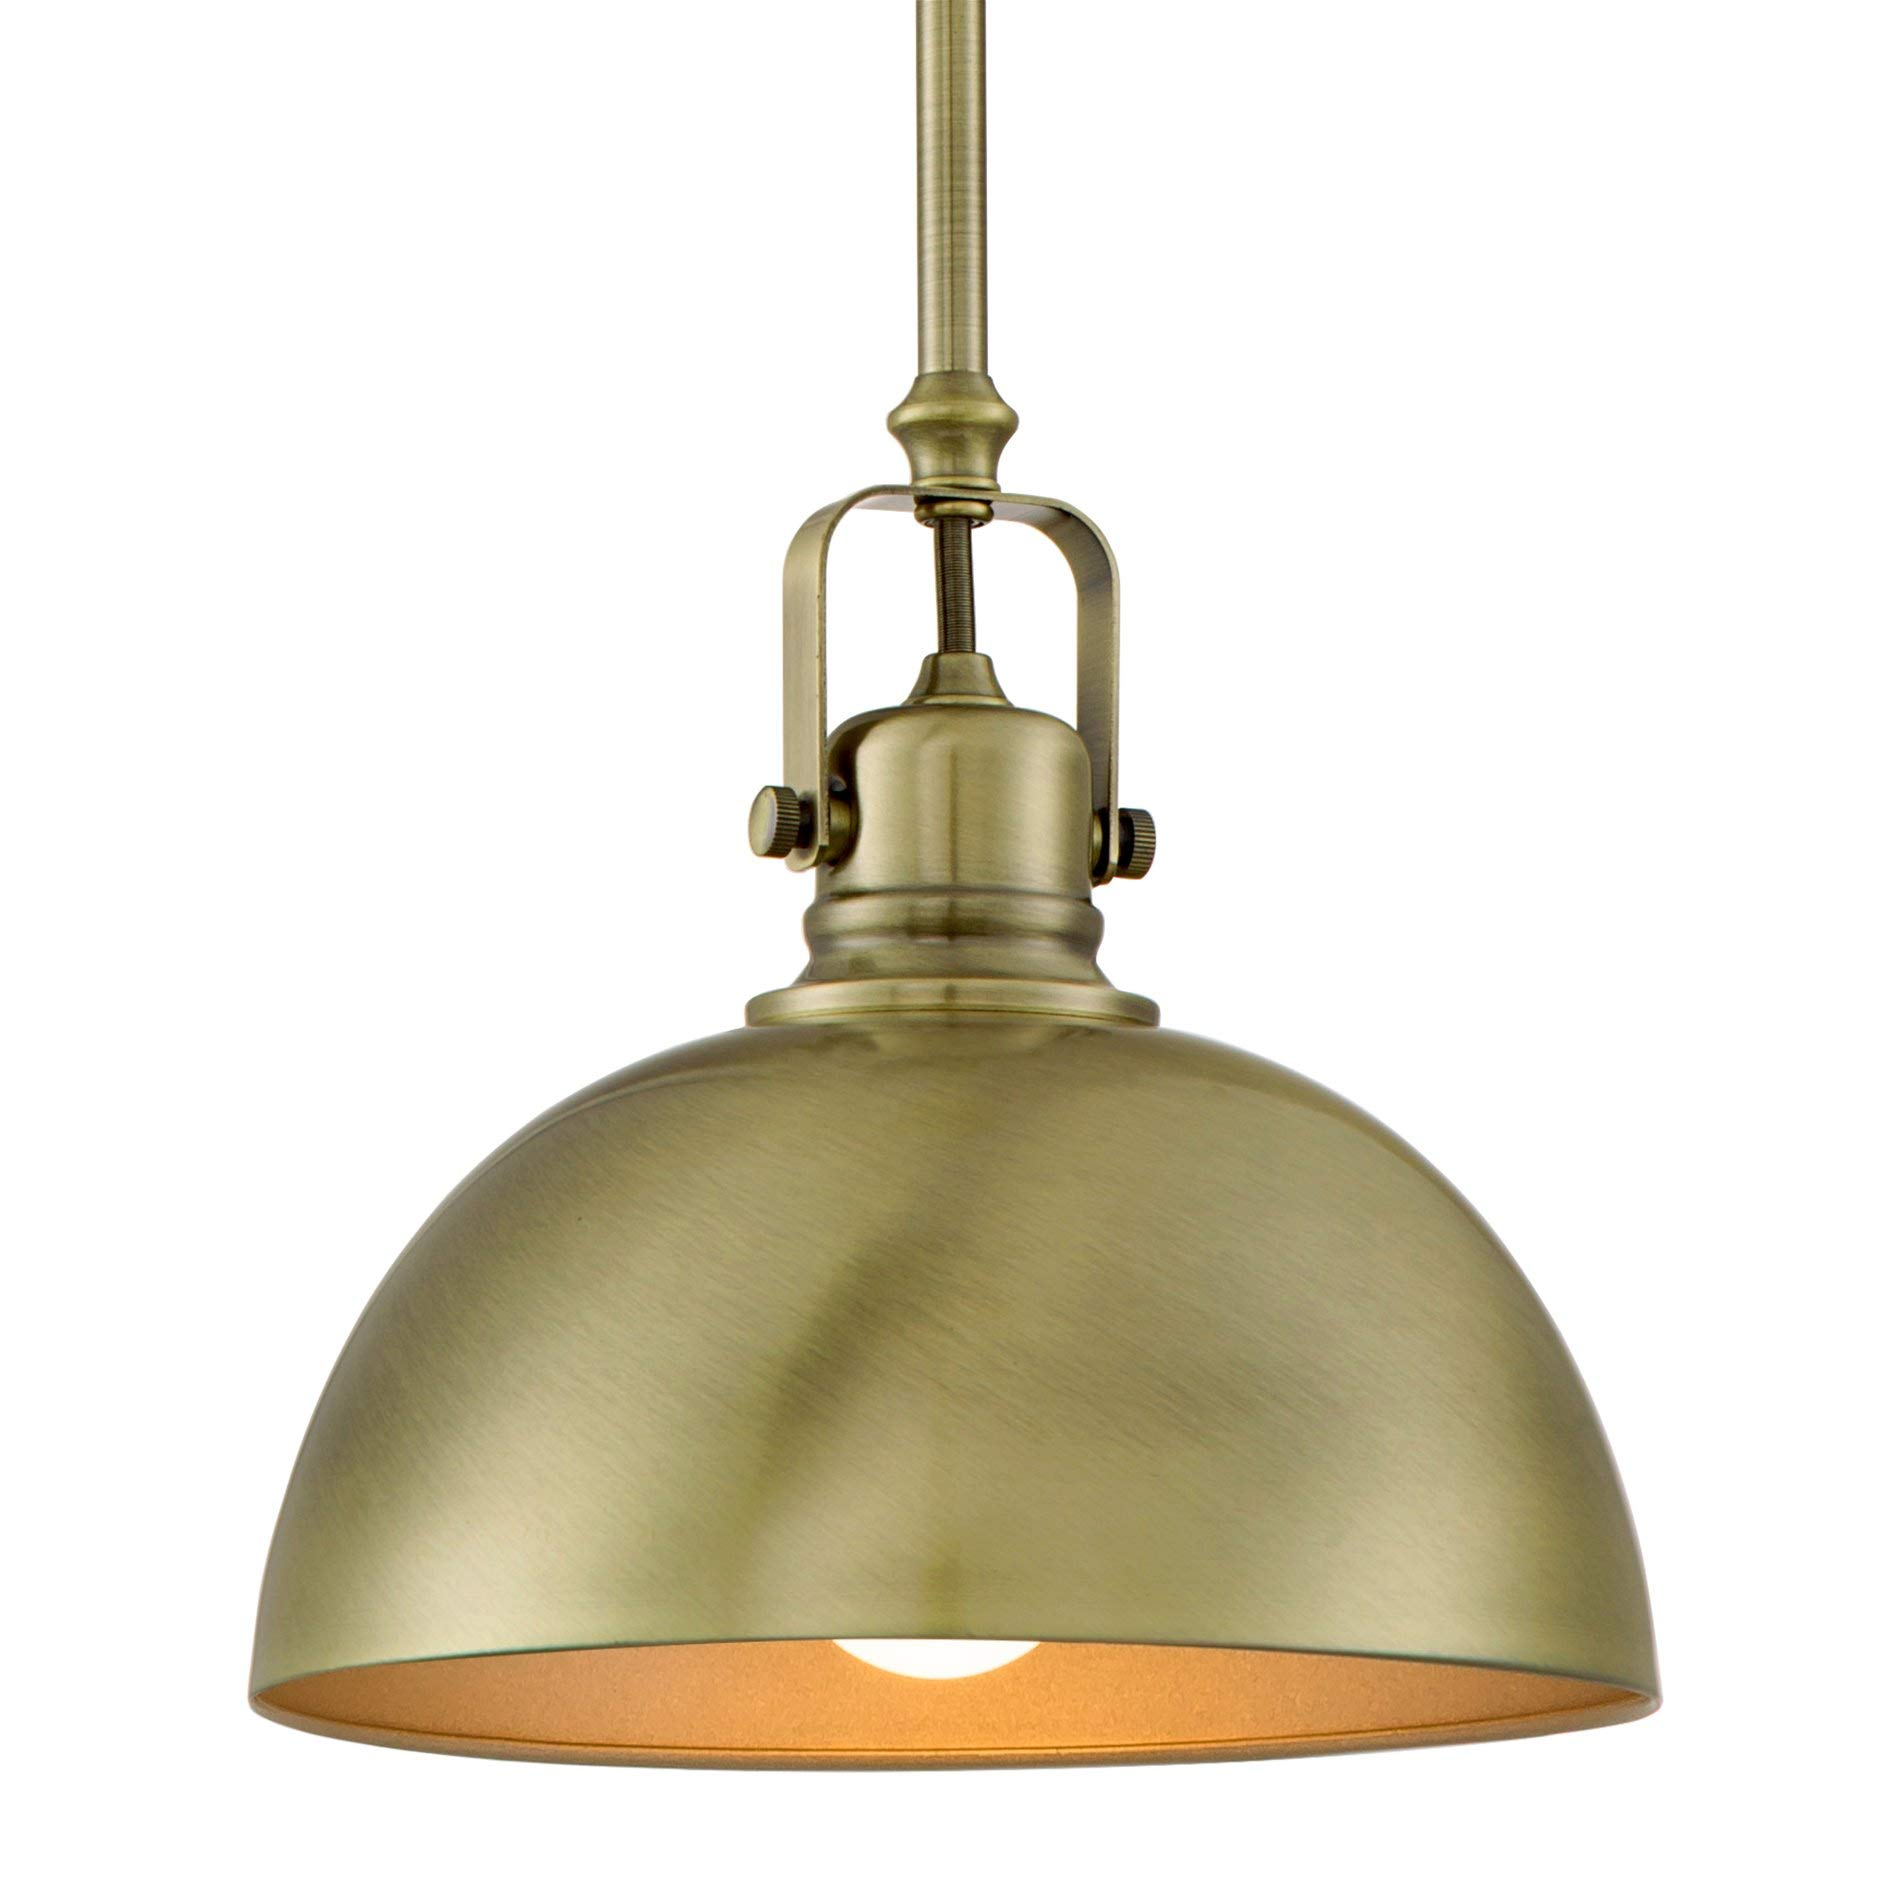 Kira Home Belle 9'' Contemporary Industrial 1-Light Pendant Light, Adjustable Length + Shade Swivel Joint, Brushed Brass Finish by Kira Home